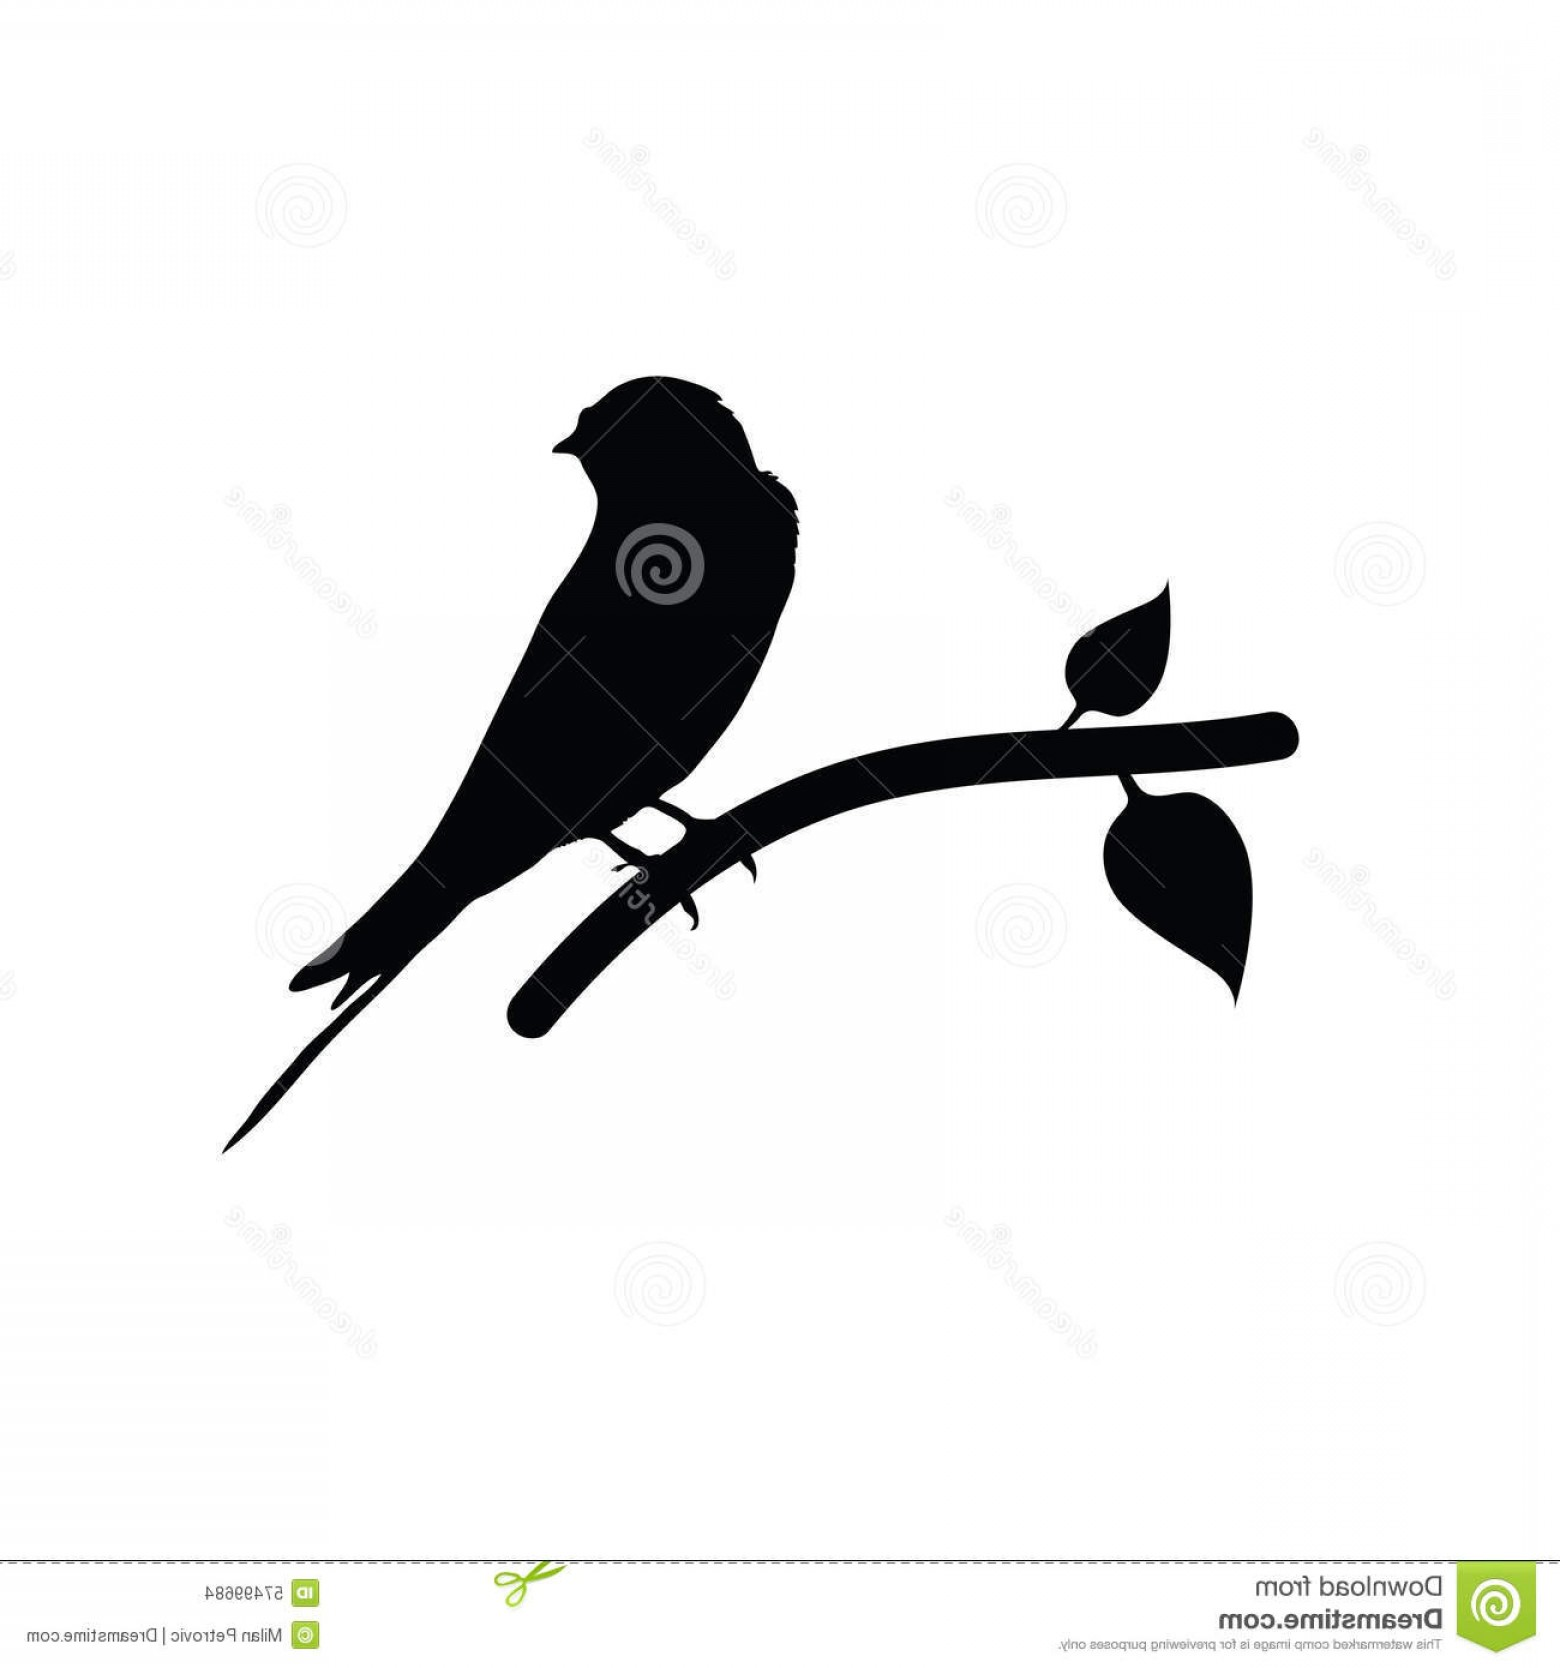 1560x1668 Stock Illustration Sparrow Black Vector Art Silhouette Image Arenawp